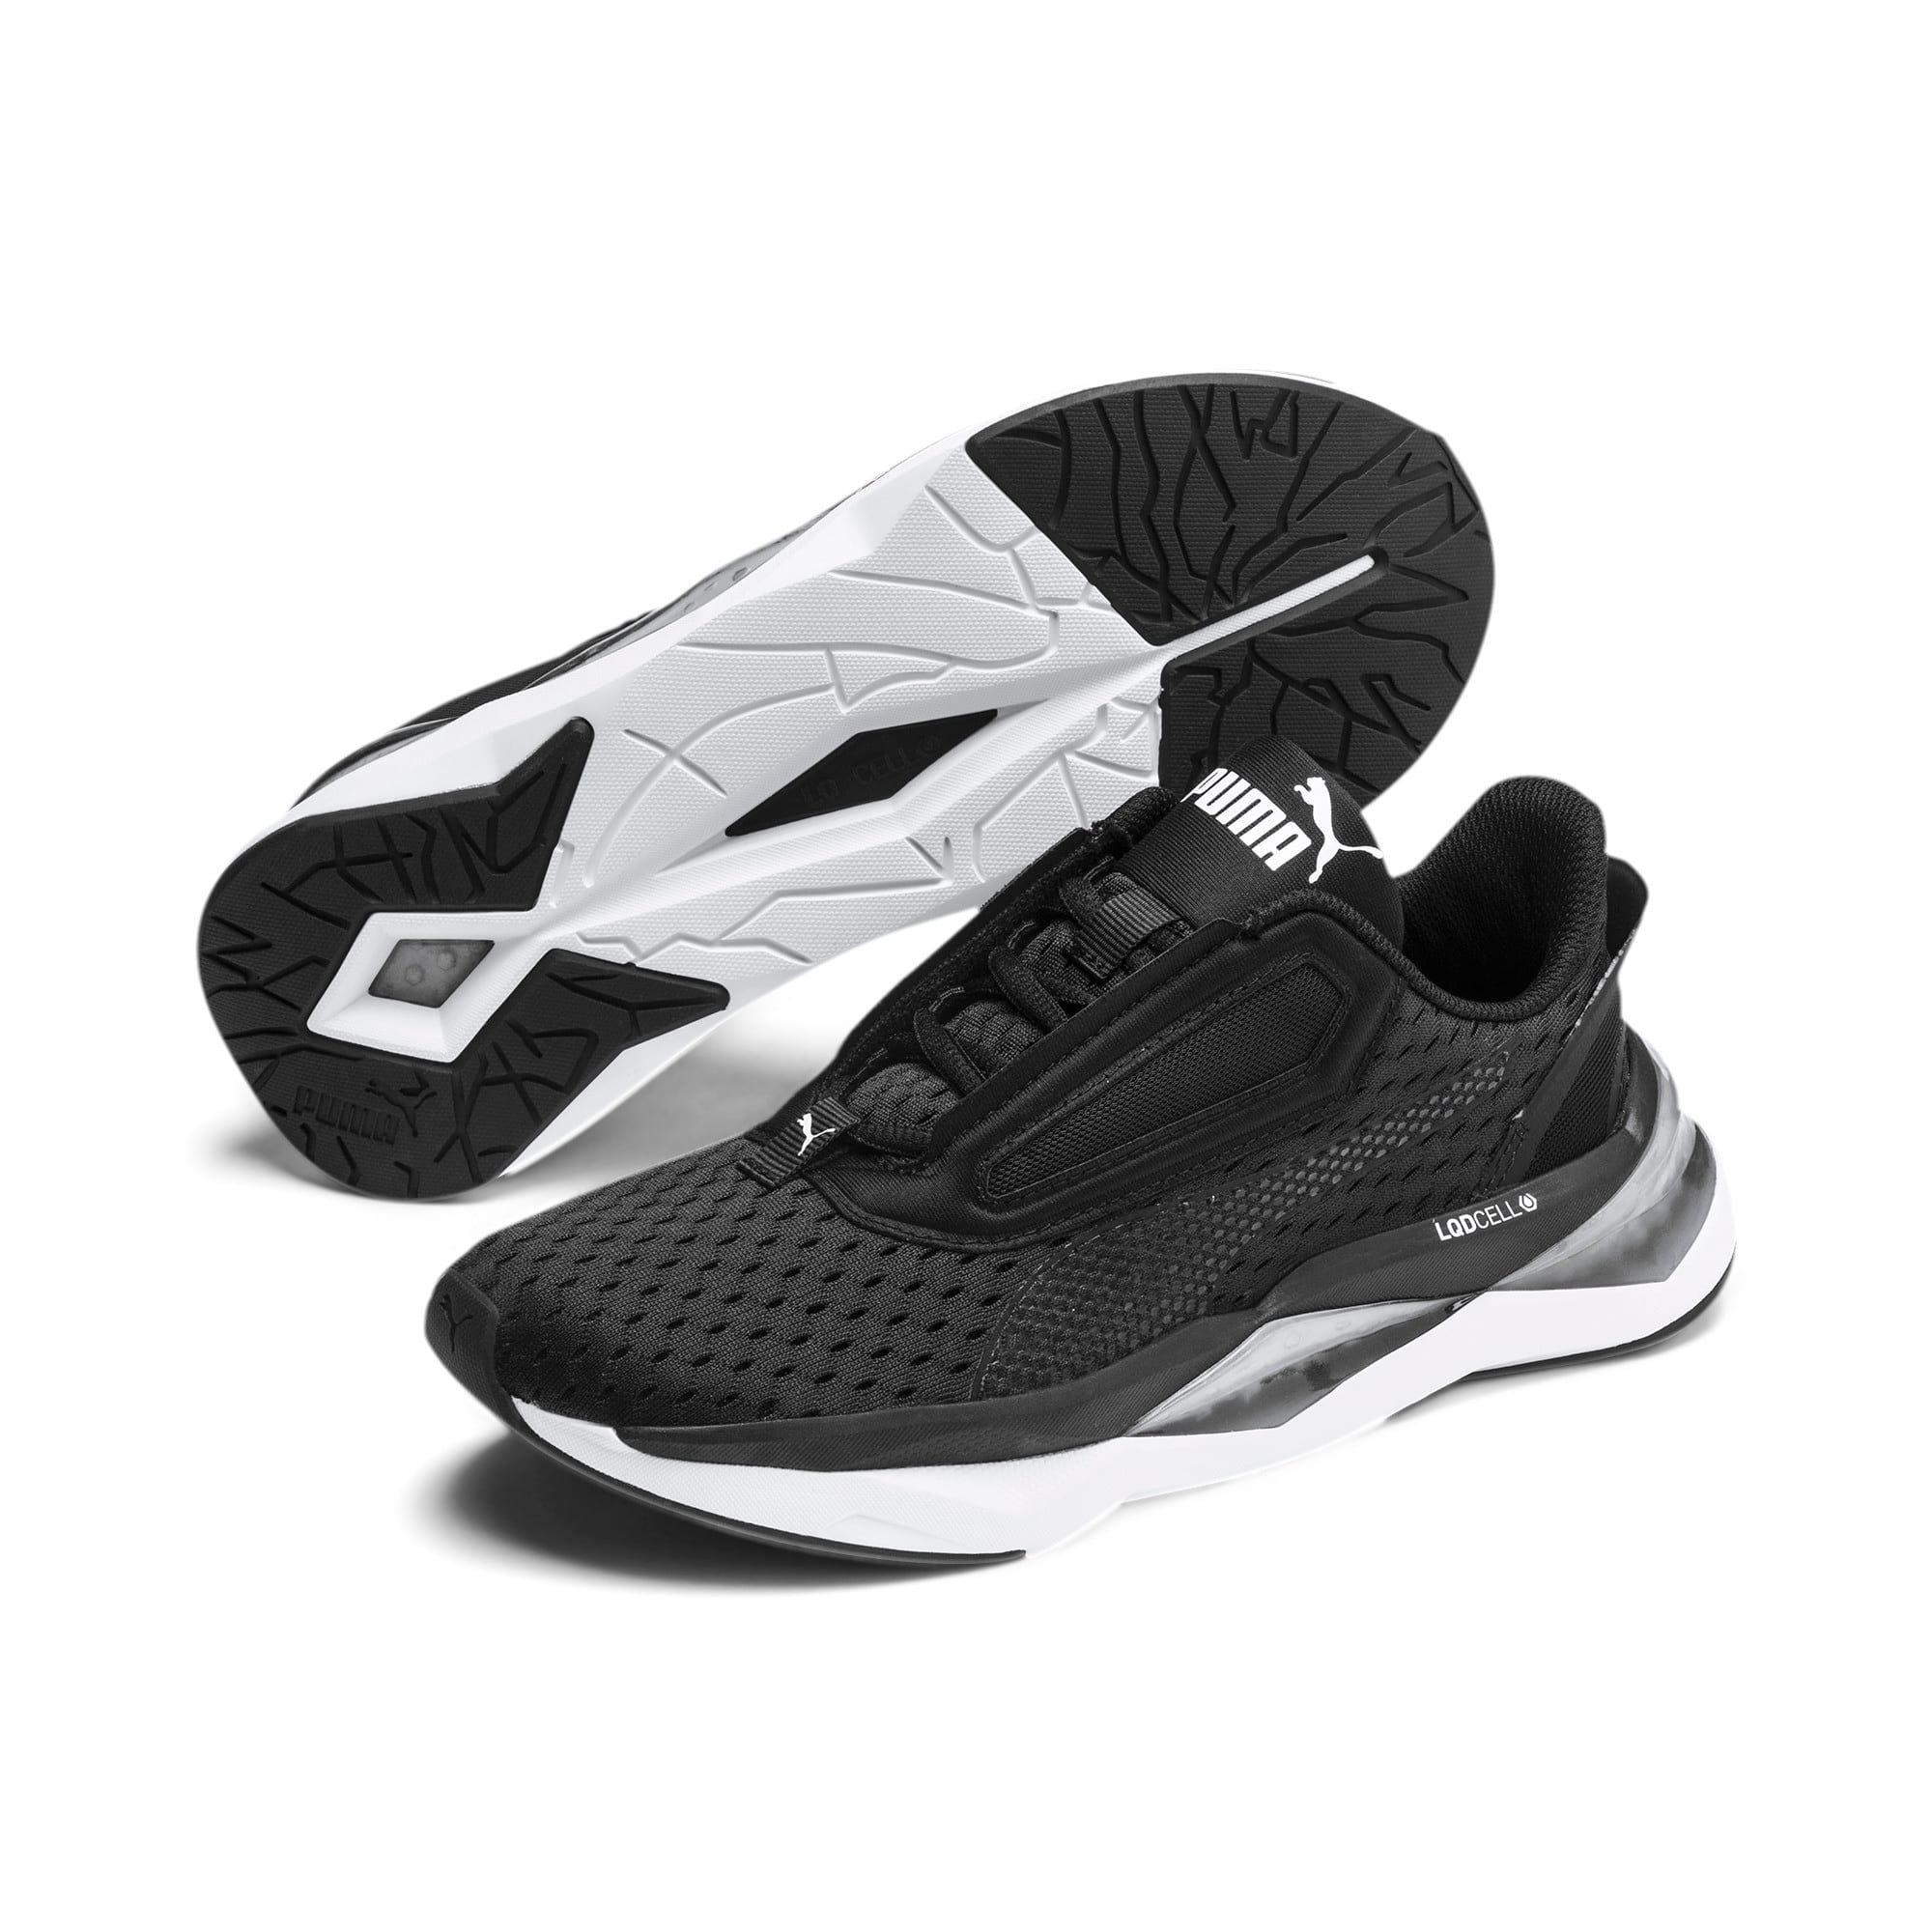 Thumbnail 3 of LQDCELL Shatter XT Women's Training Shoes, Puma Black-Puma White, medium